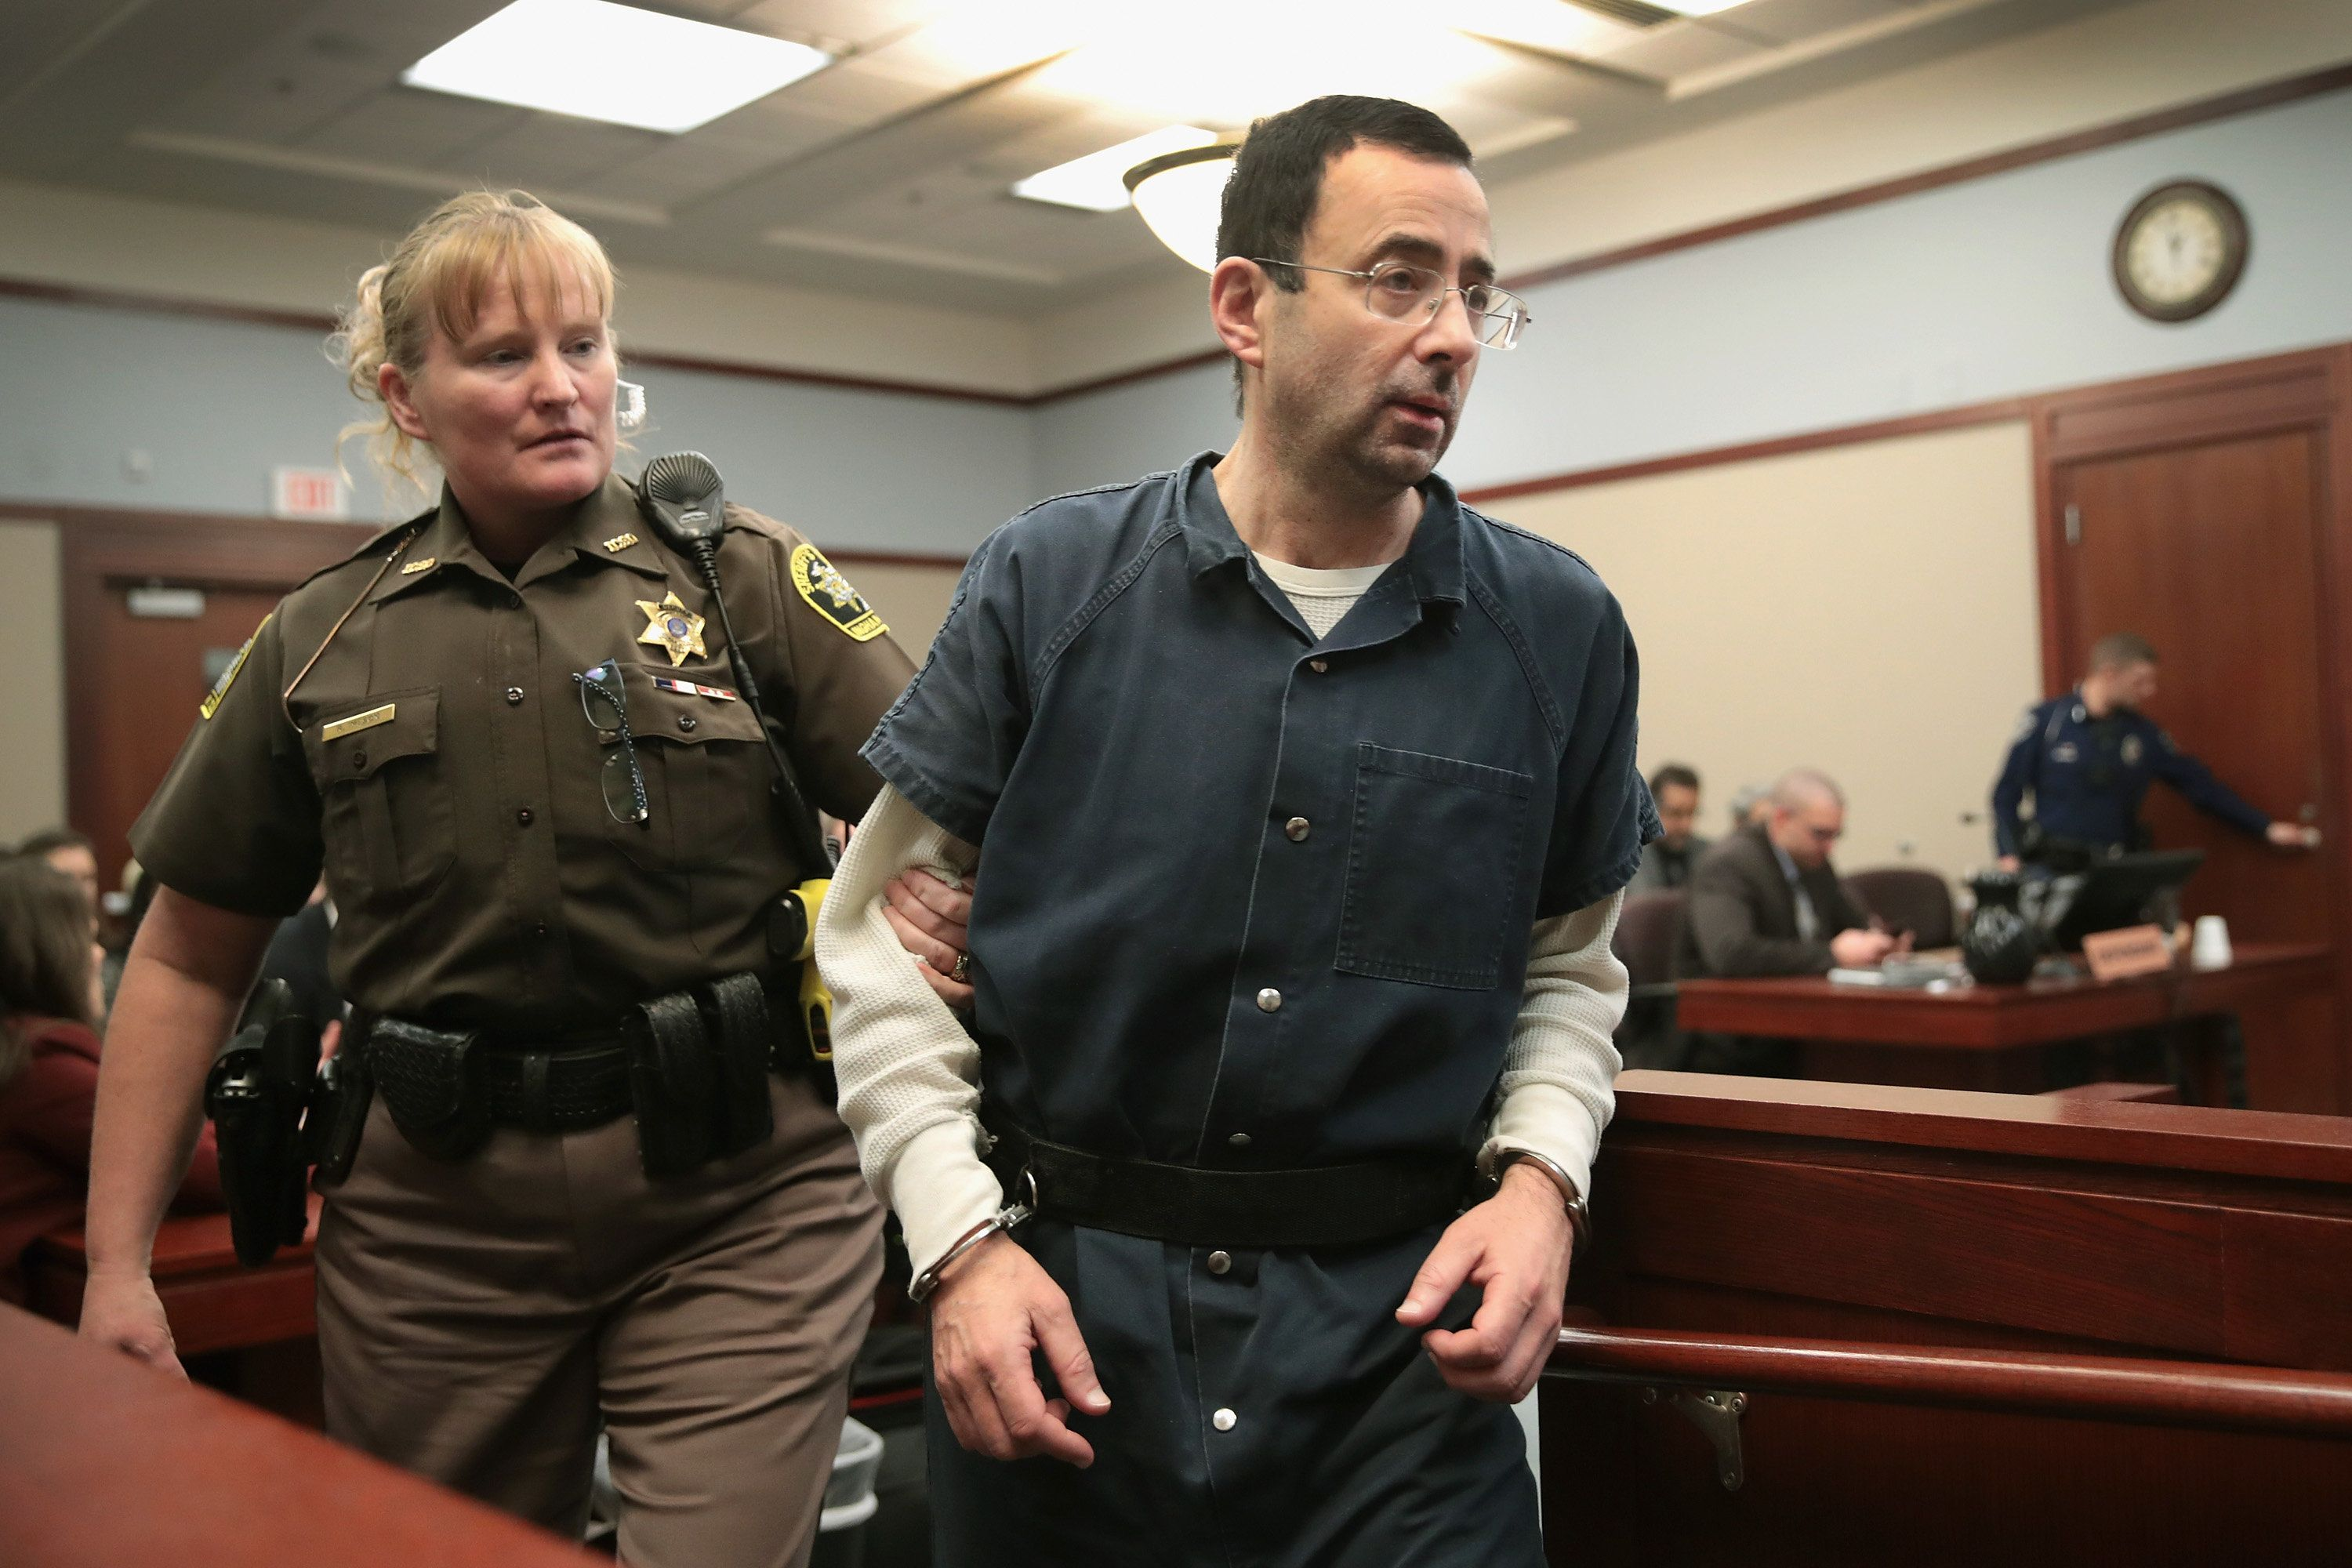 Larry Nassar in court during his sentencing hearing on Jan. 17, 2018.